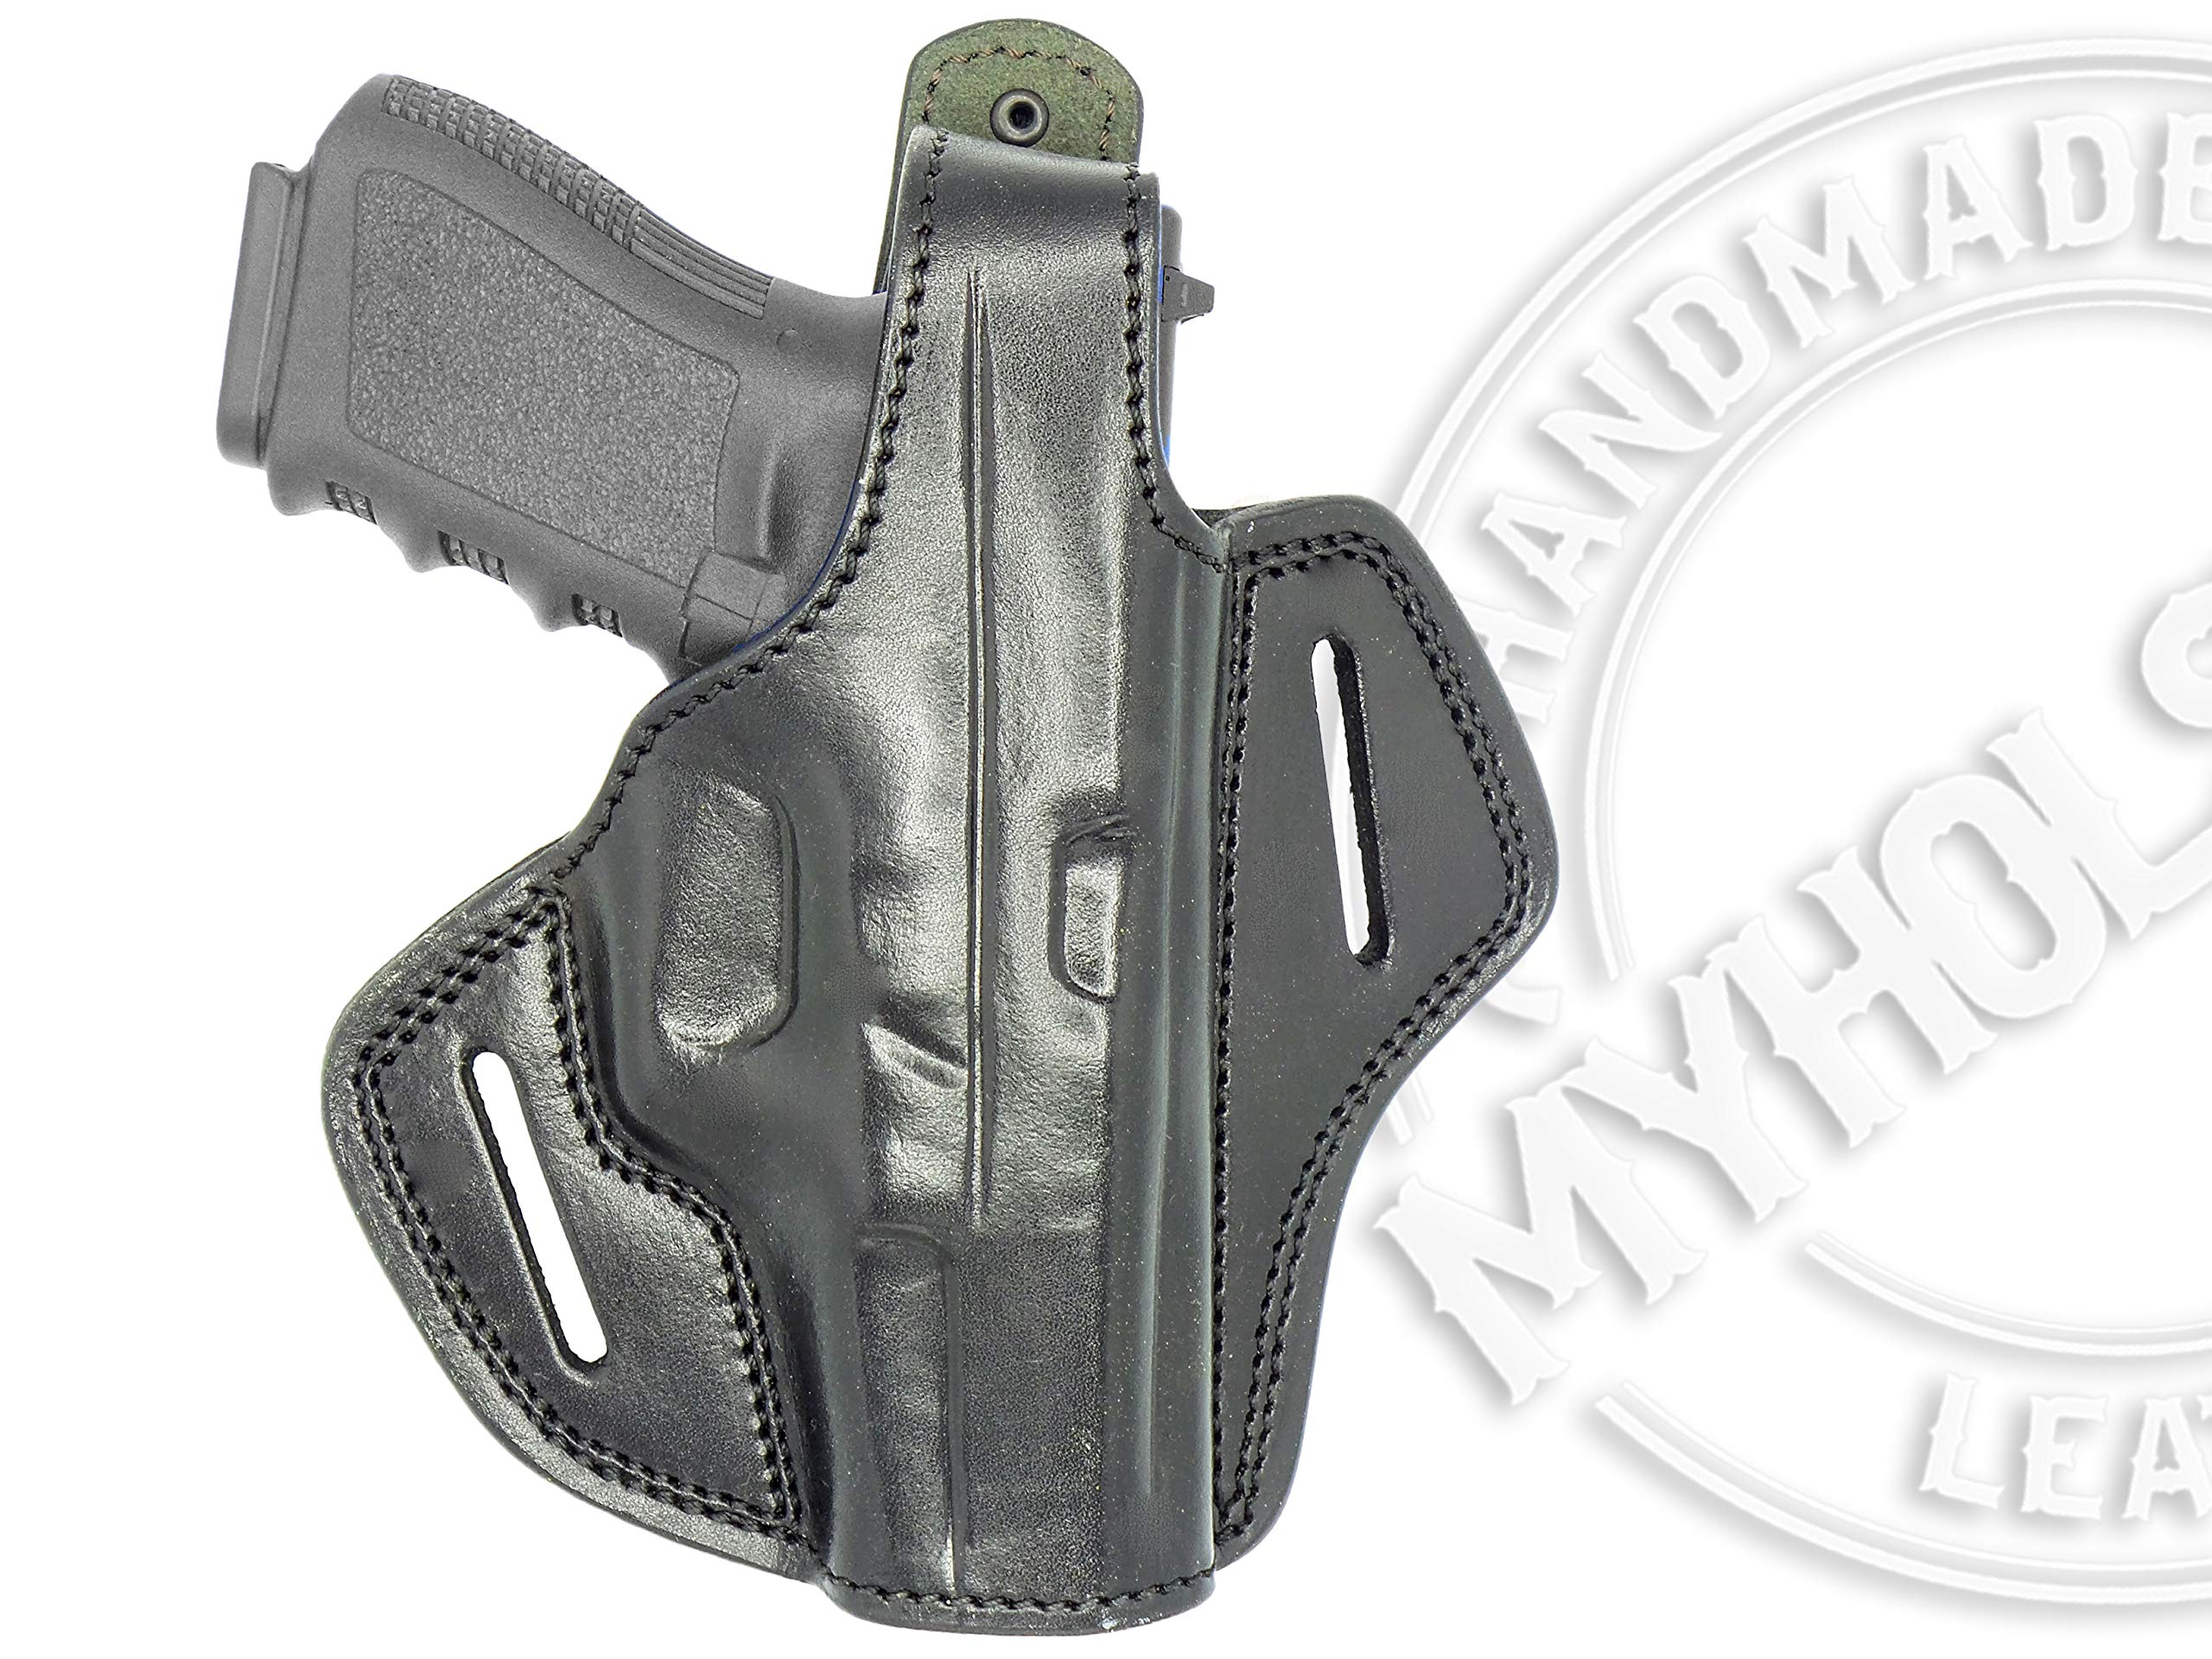 MyHolster Right Hand OWB Leather Gun Holster for Belts fits Smith & Wesson Model 5906 & Similar Frames (Black) by My Holster